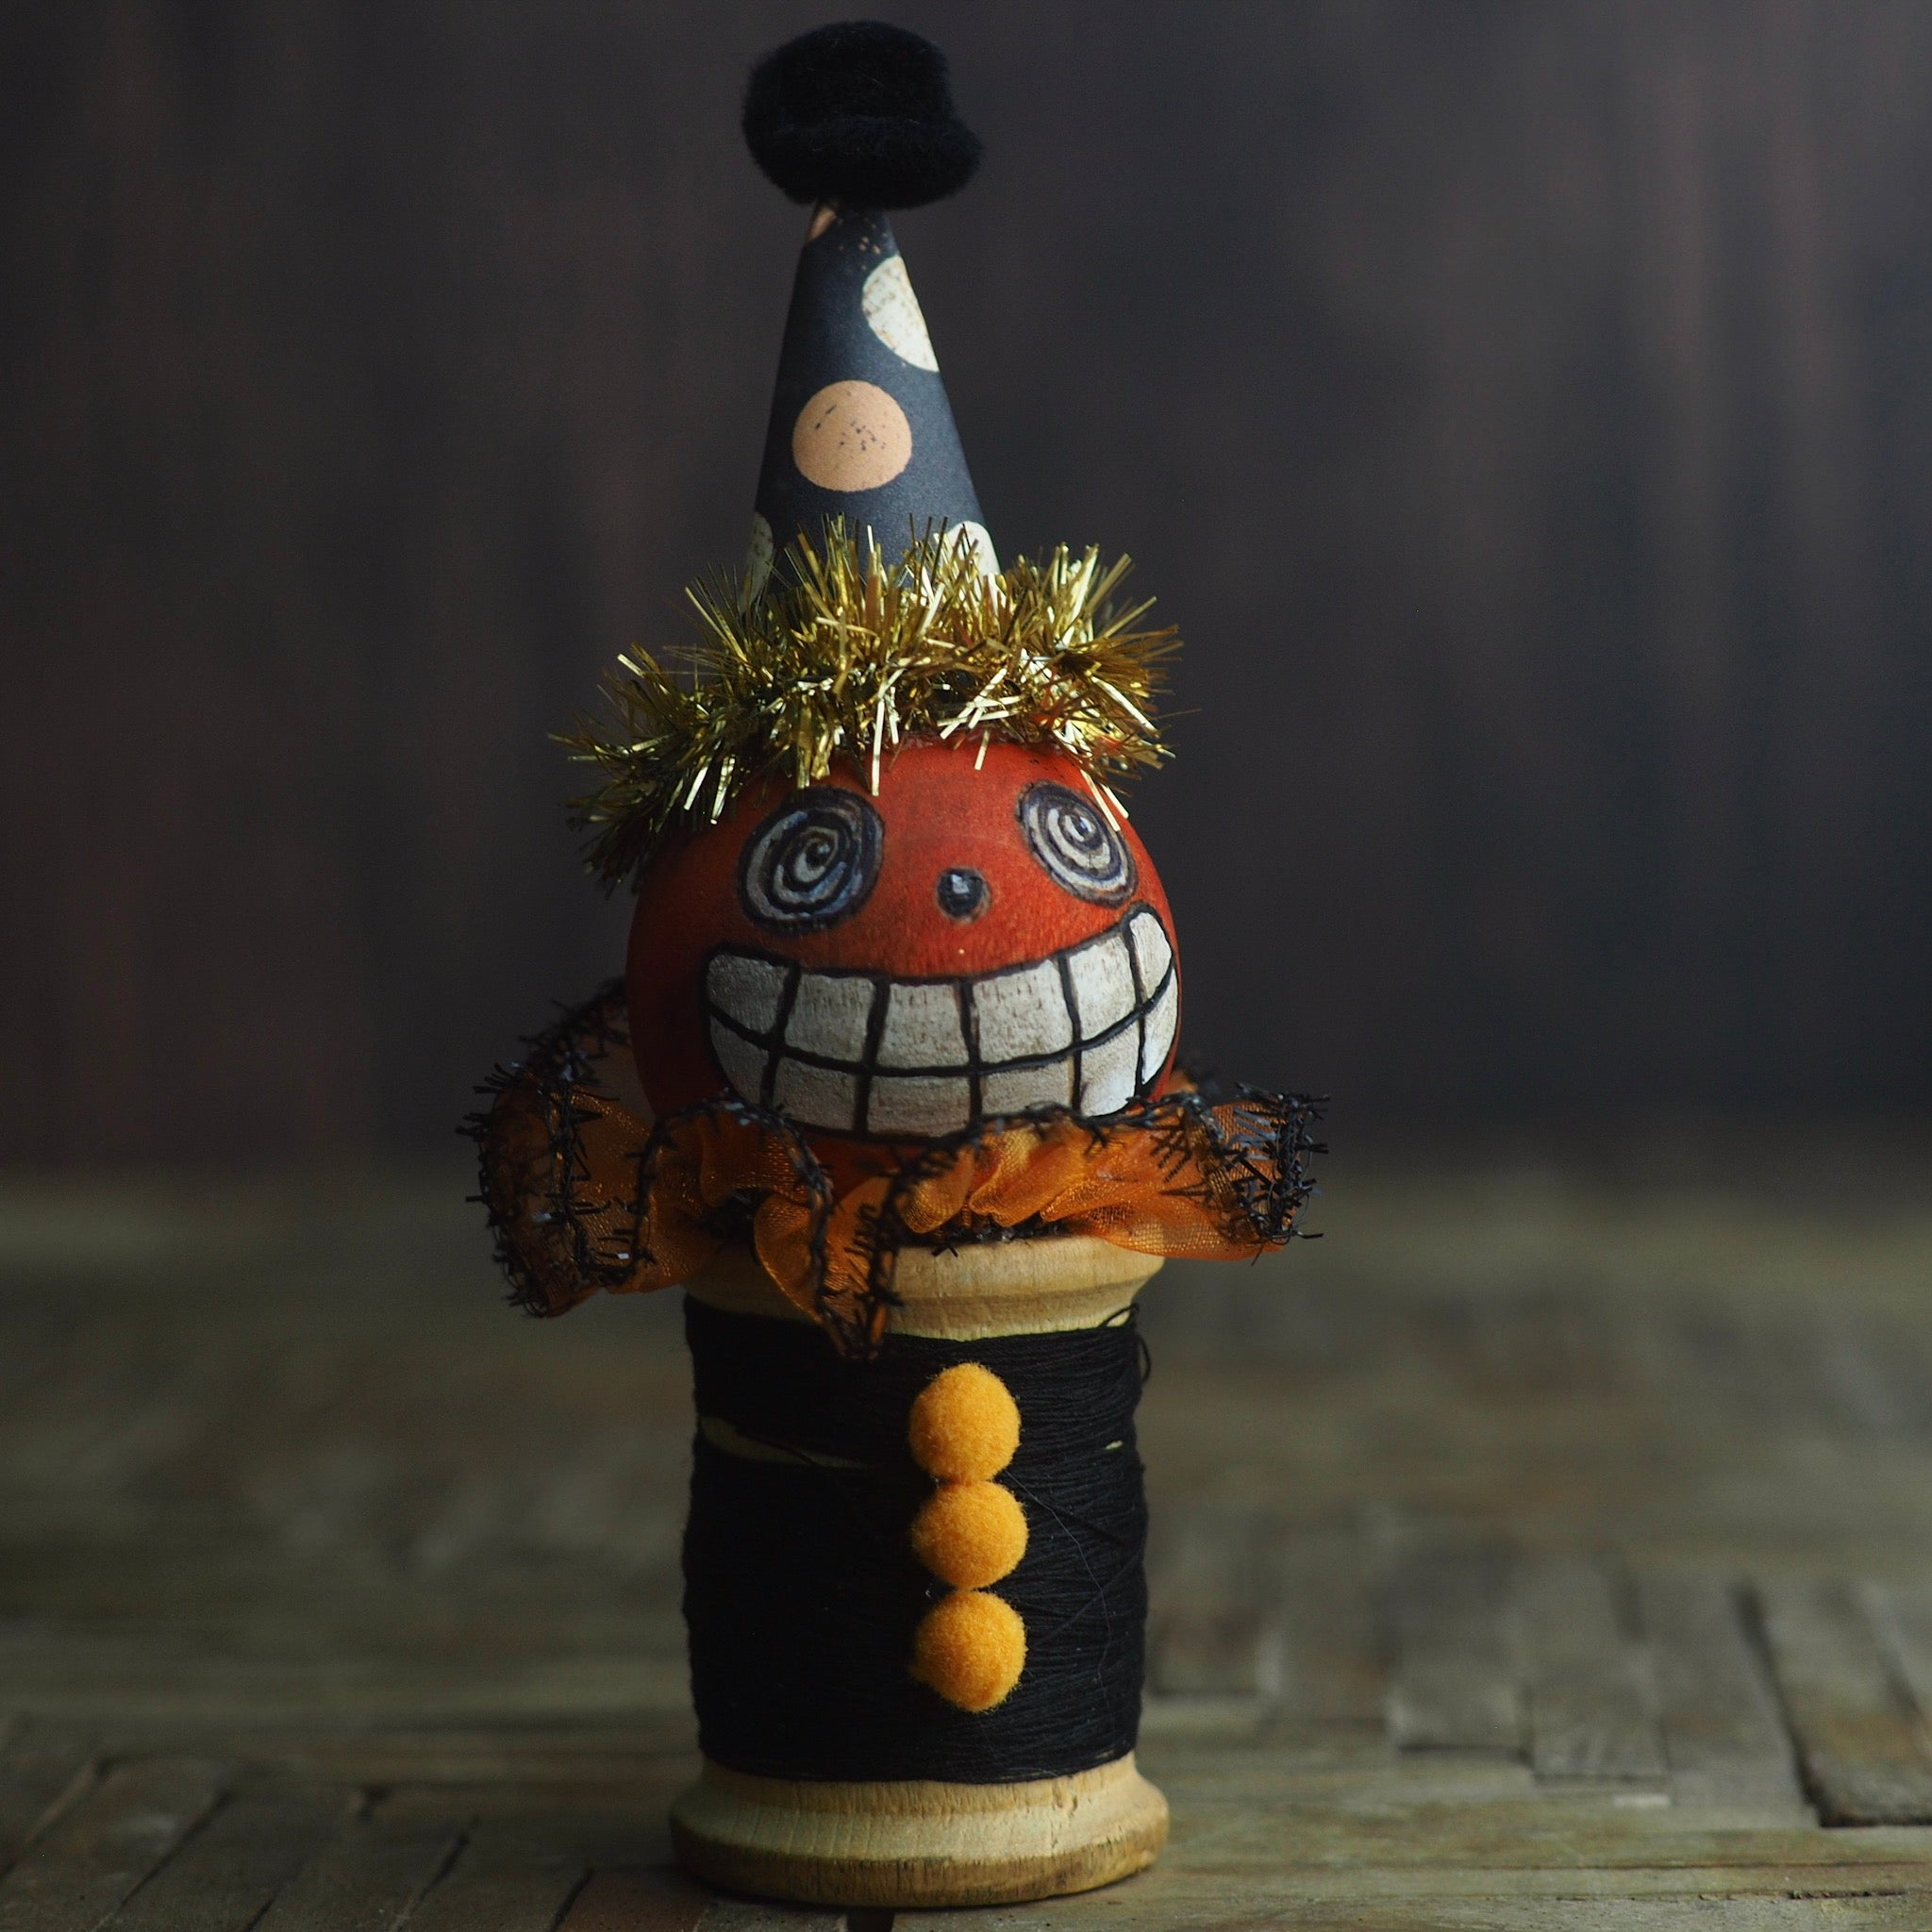 Dan, the happy go lucky jack-o-lantern pumpkin - Vintage thread spool kokeshi Halloween art doll by Danita, Miniature Dolls by Danita Art